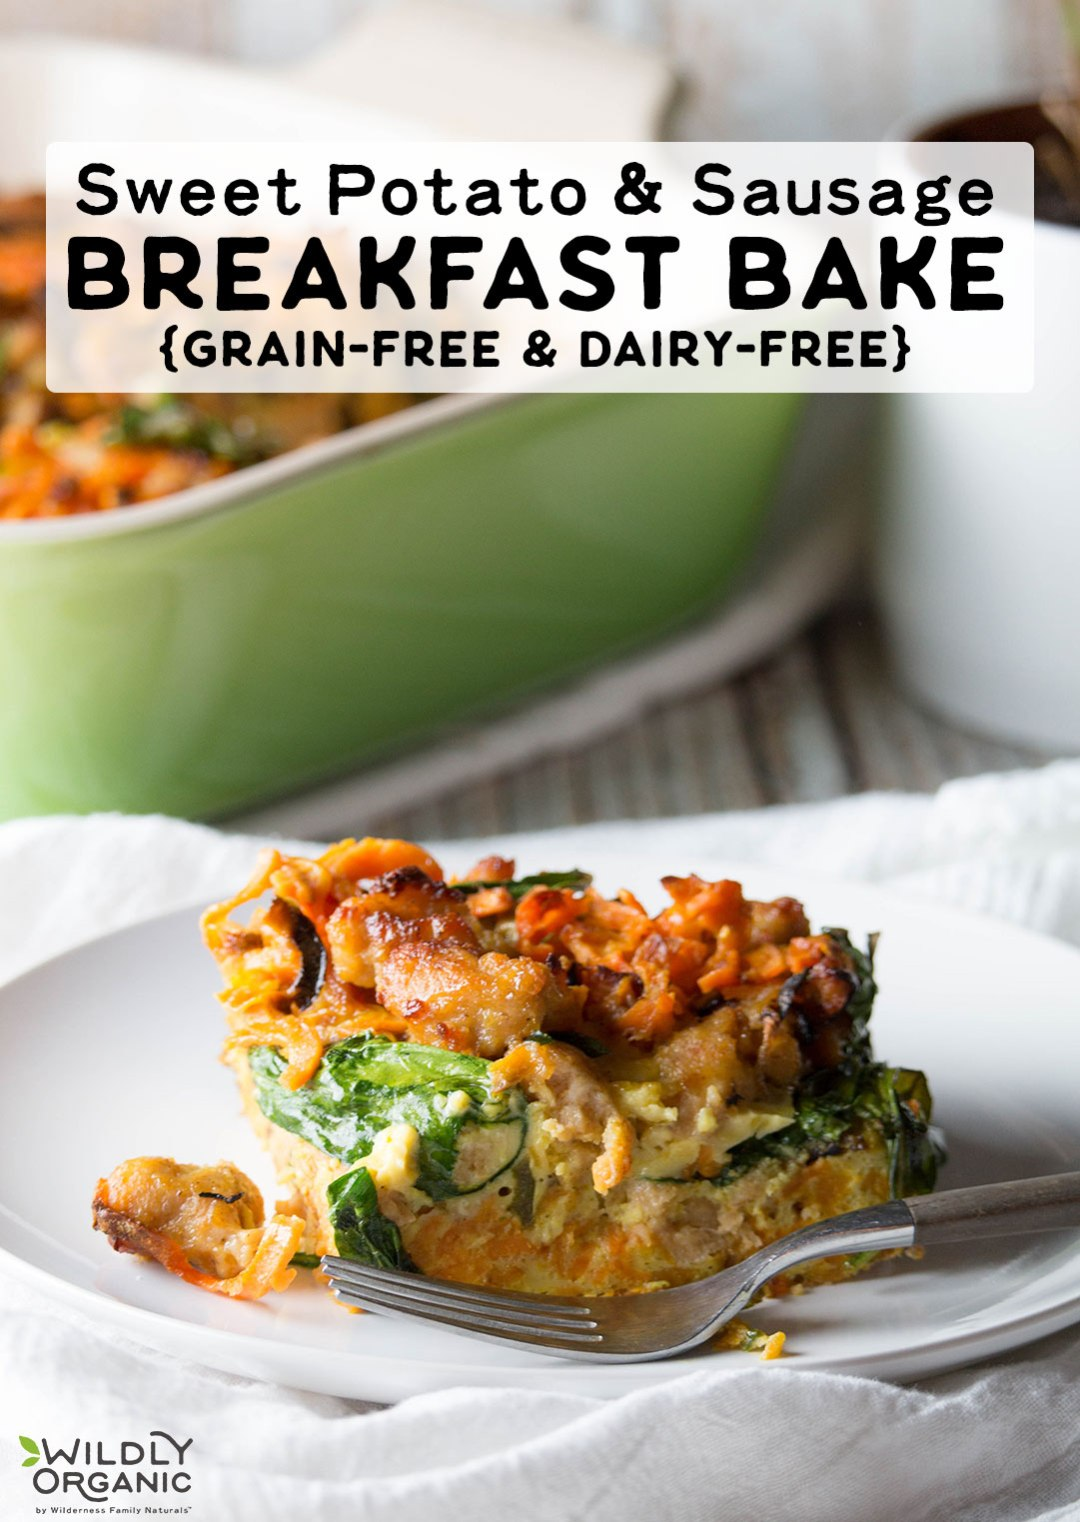 Need the perfect addition to your Christmas breakfast, holiday brunch, or even just a special weekend morning? Then this gluten-free, grain-free, dairy-free, and nut-free Sweet Potato and Sausage Breakfast Bake is IT. It's loaded with tons of flavor and nutritious vegetables.